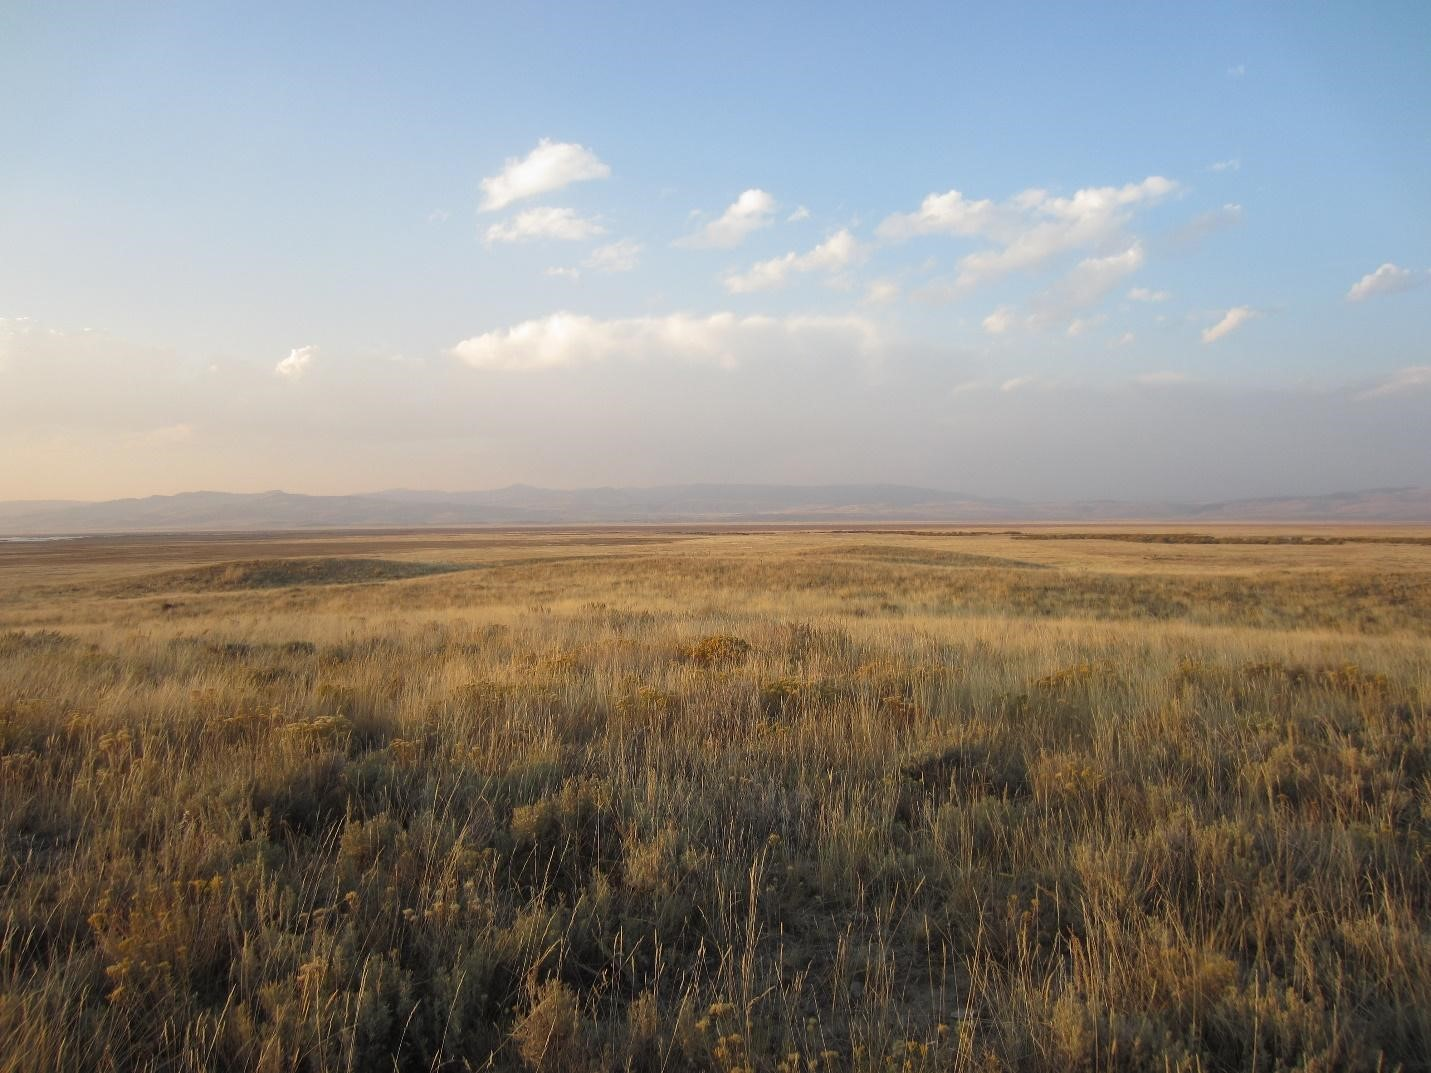 Rangeland extending out to the horizon at sunset in Fall with foothills in the distance